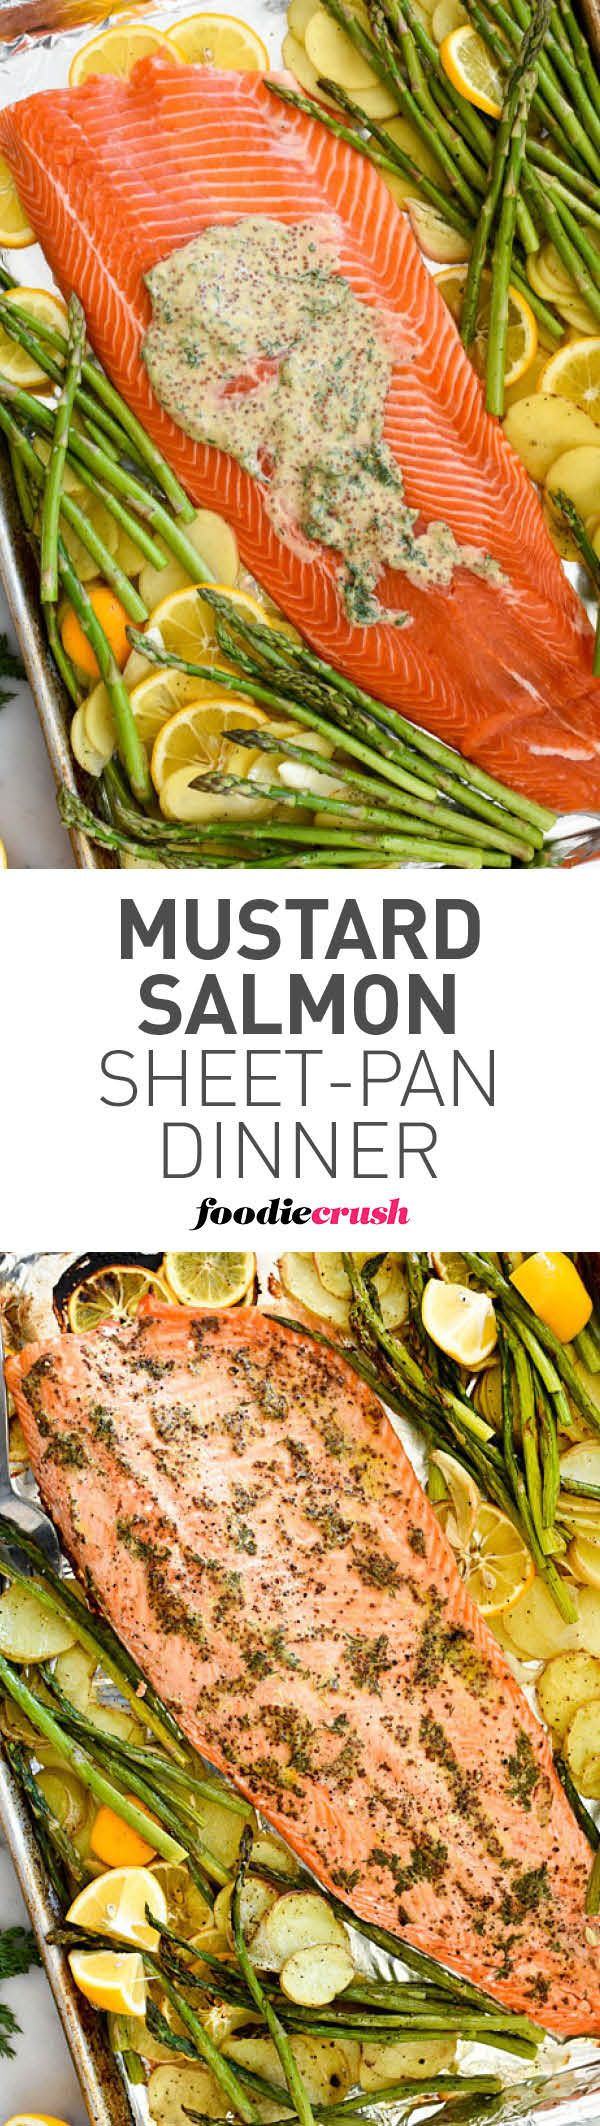 Mustard Salmon Sheet-Pan Dinner is a super simple dinner with minimal clean-up #salmon #shseetpan #fish #dinner | foodiecrush.com